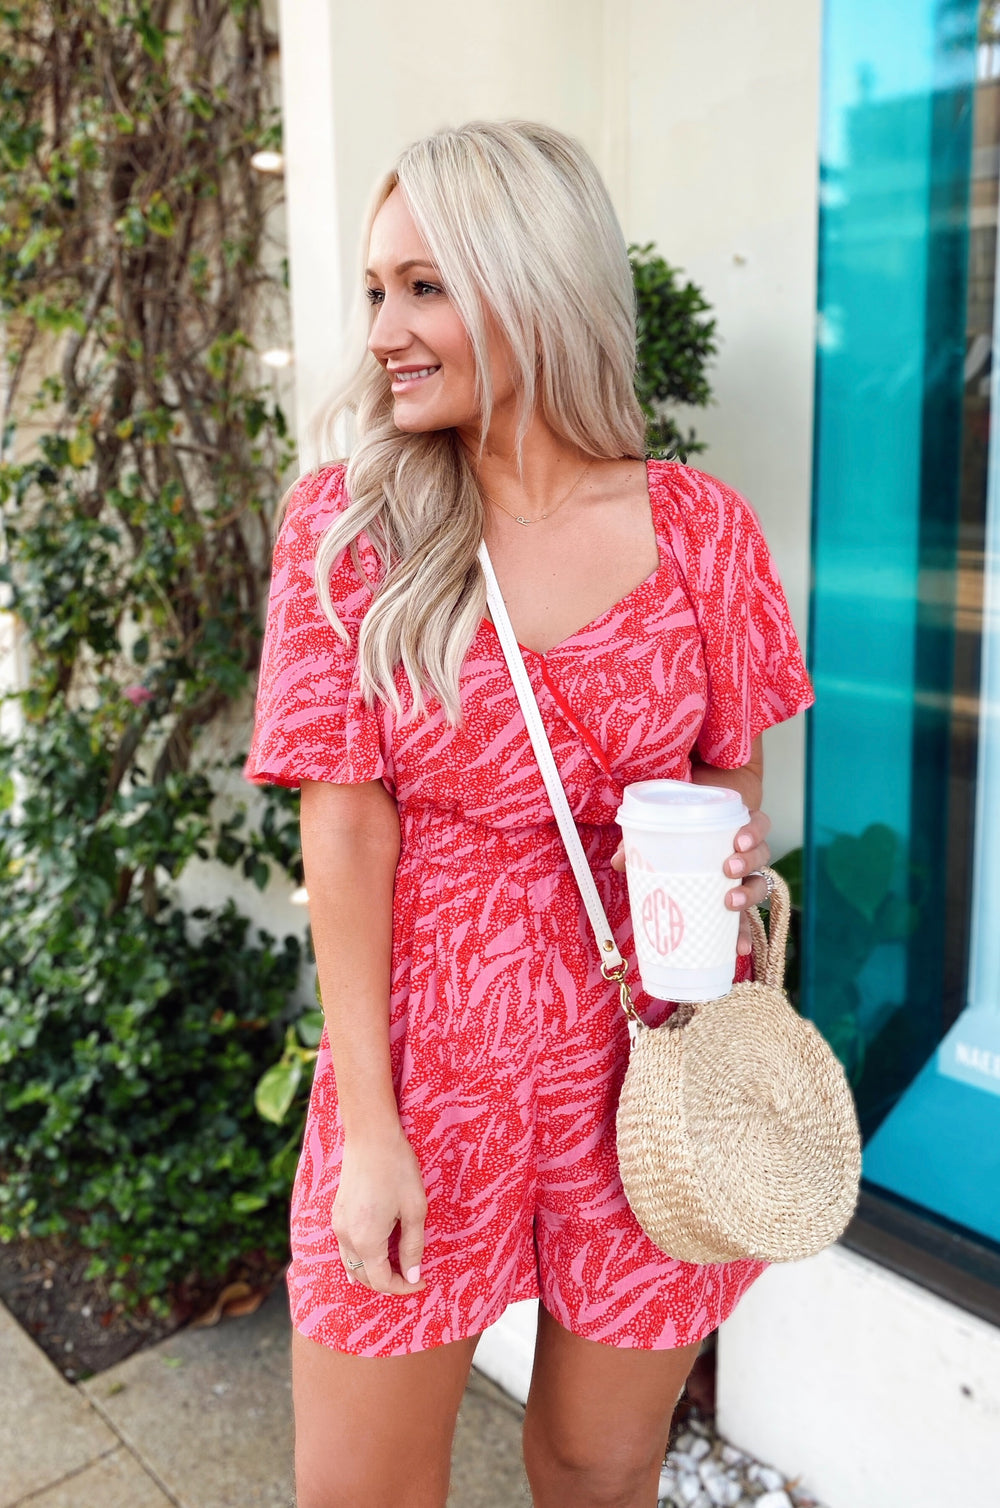 Sugar & Sweet Pink Romper Inspired by Lauren | The Palm Beach Collection